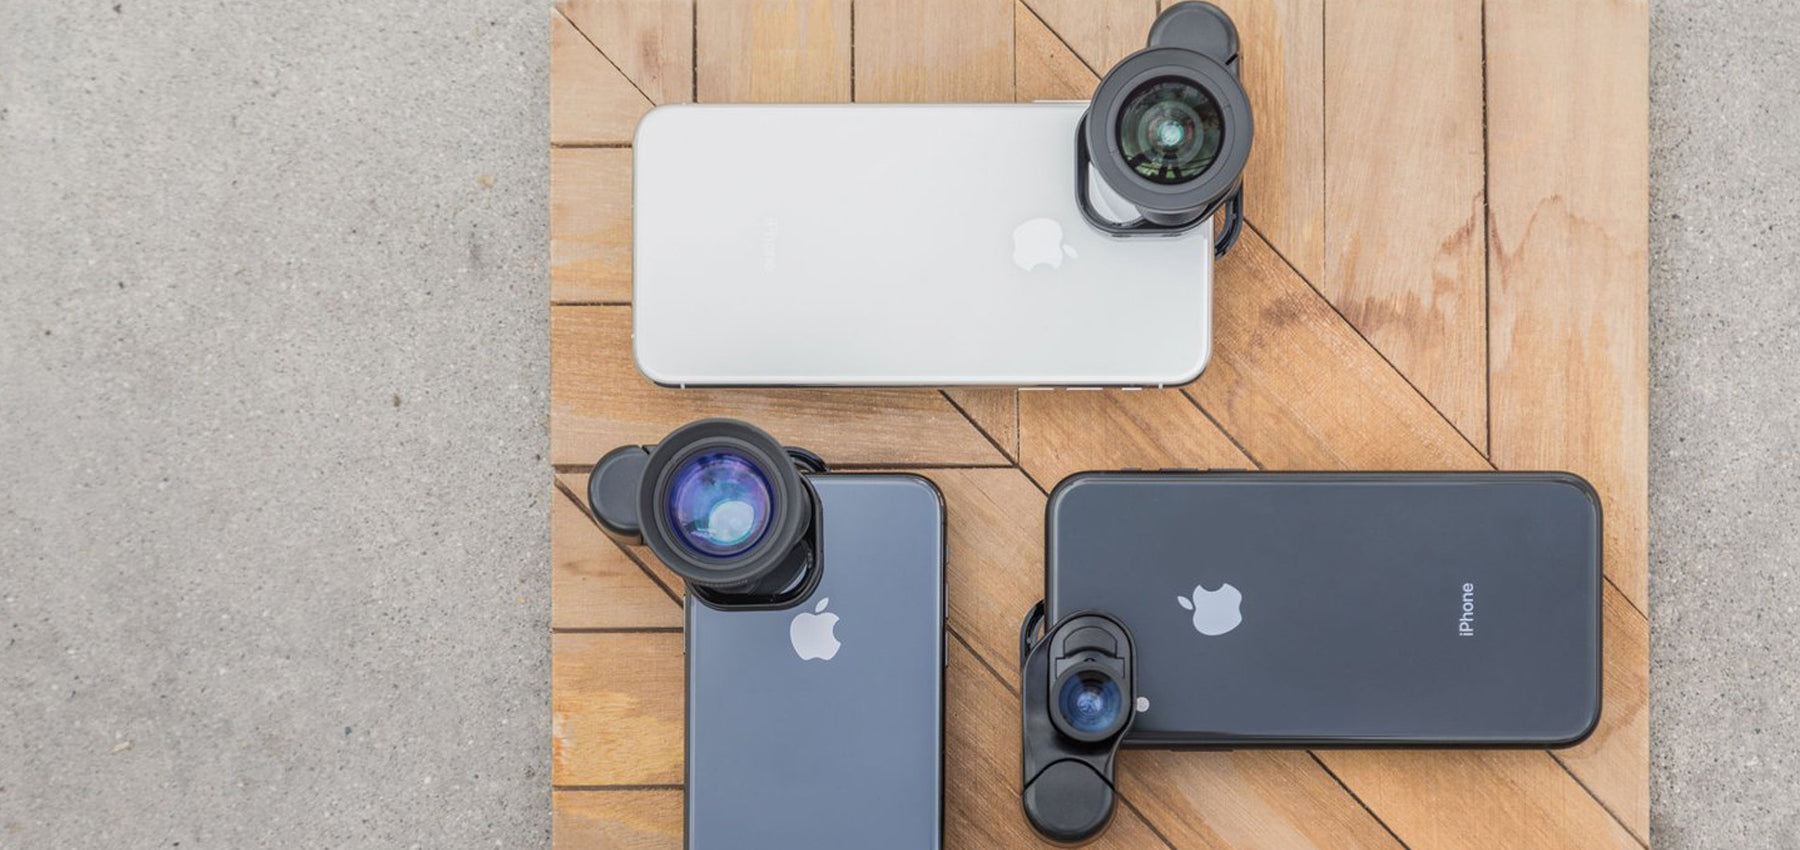 Olloclip - Premium Lens Kits for iPhone & iPad